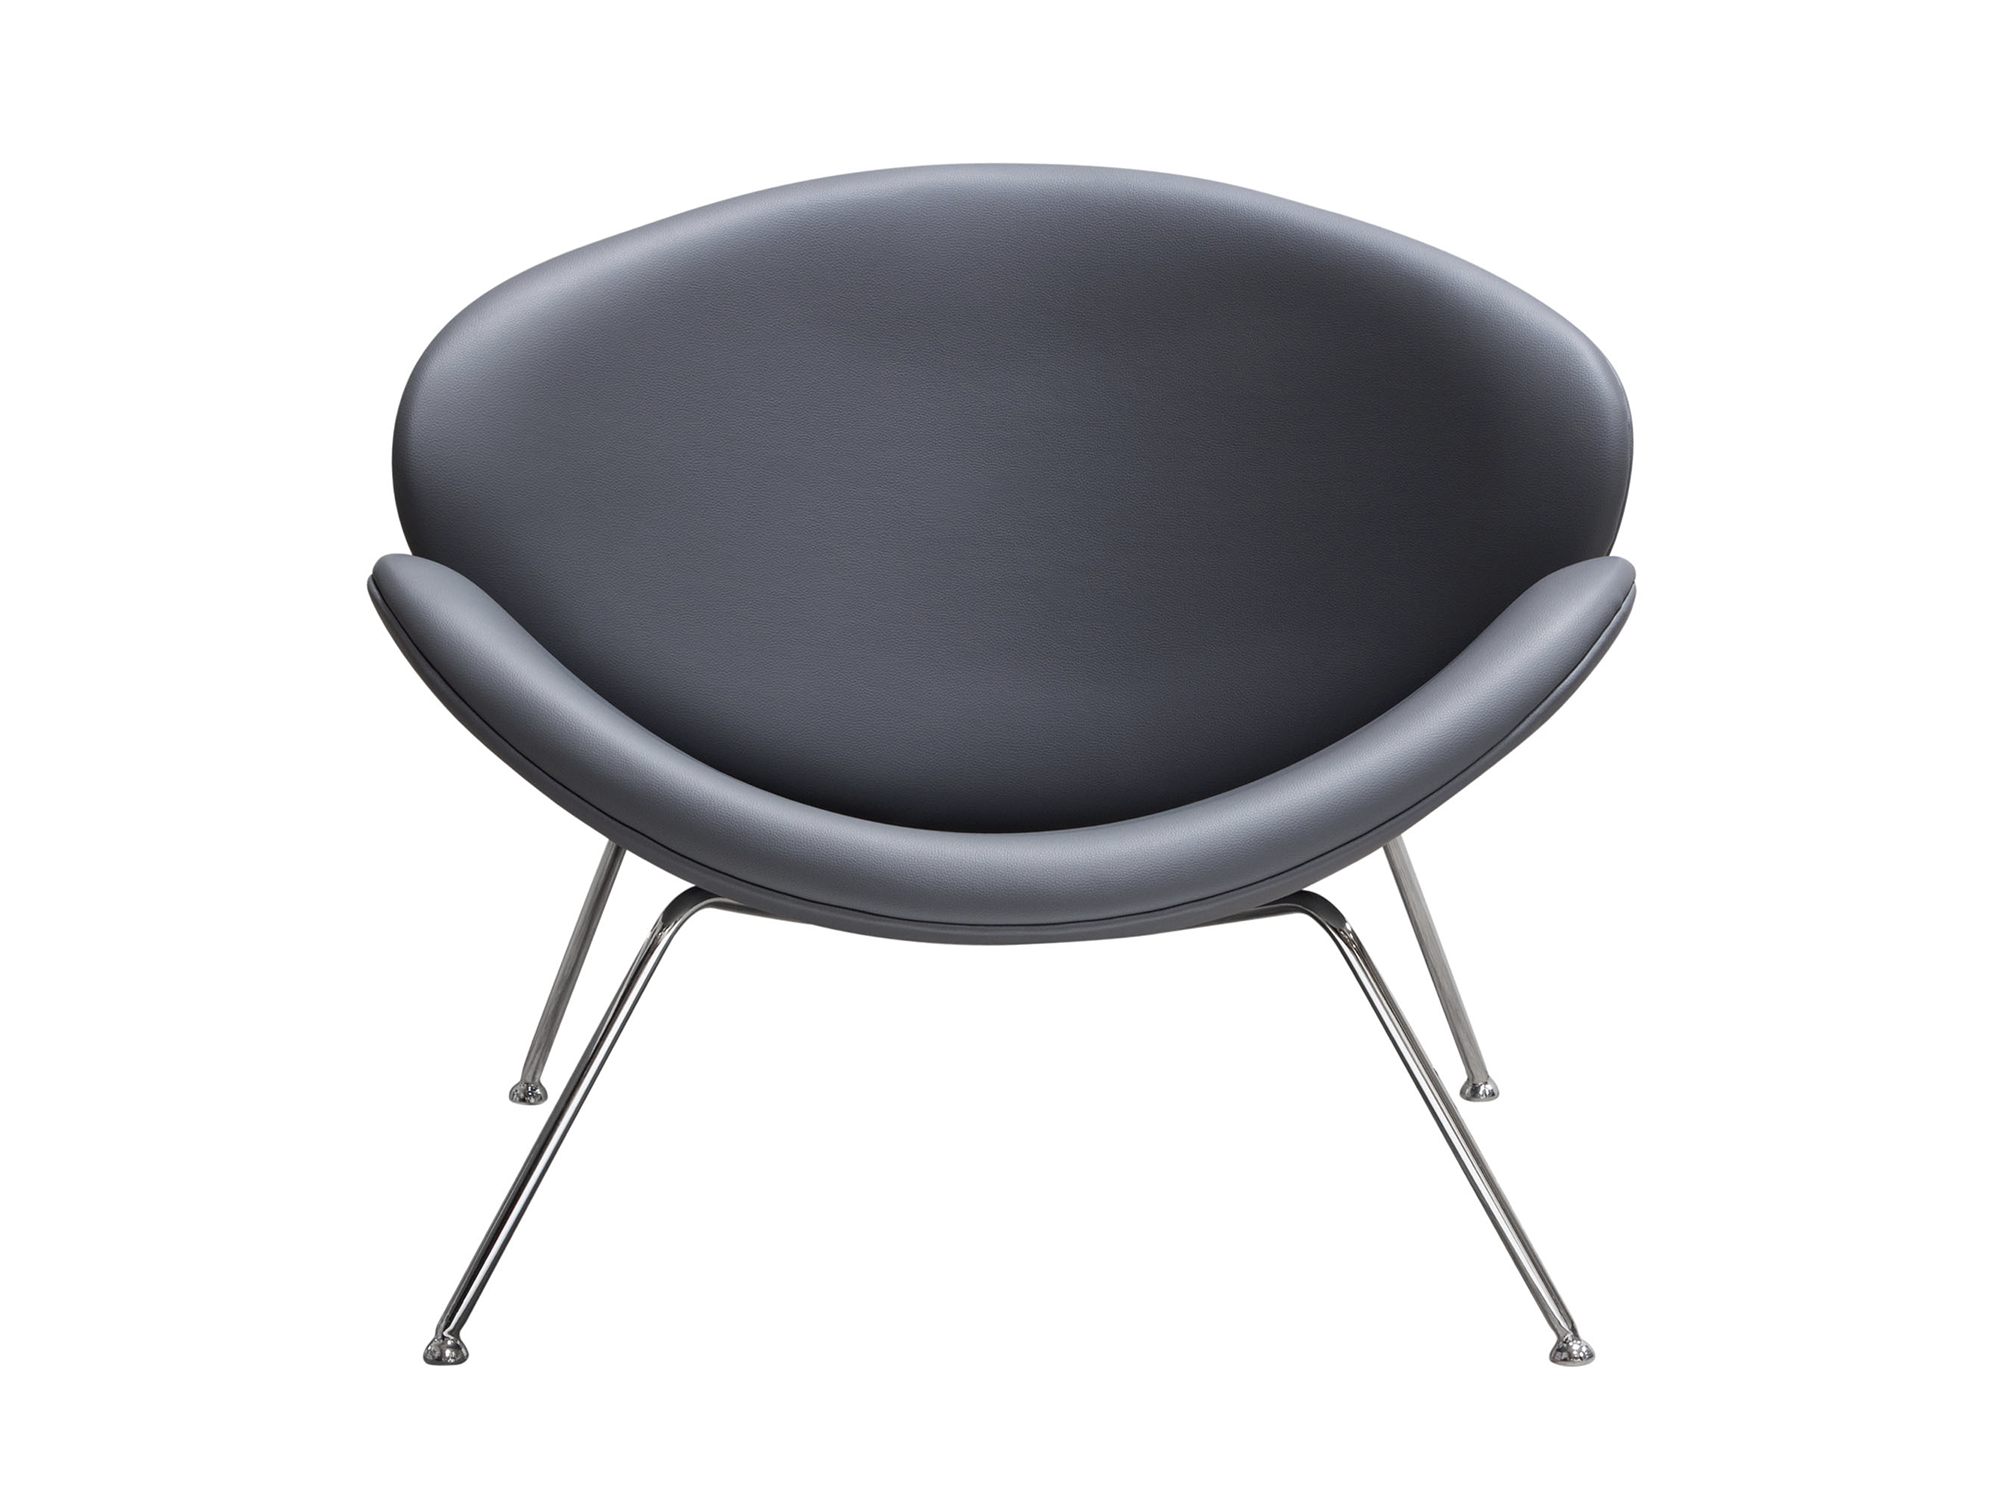 AUSTIN CHAIR - GREY